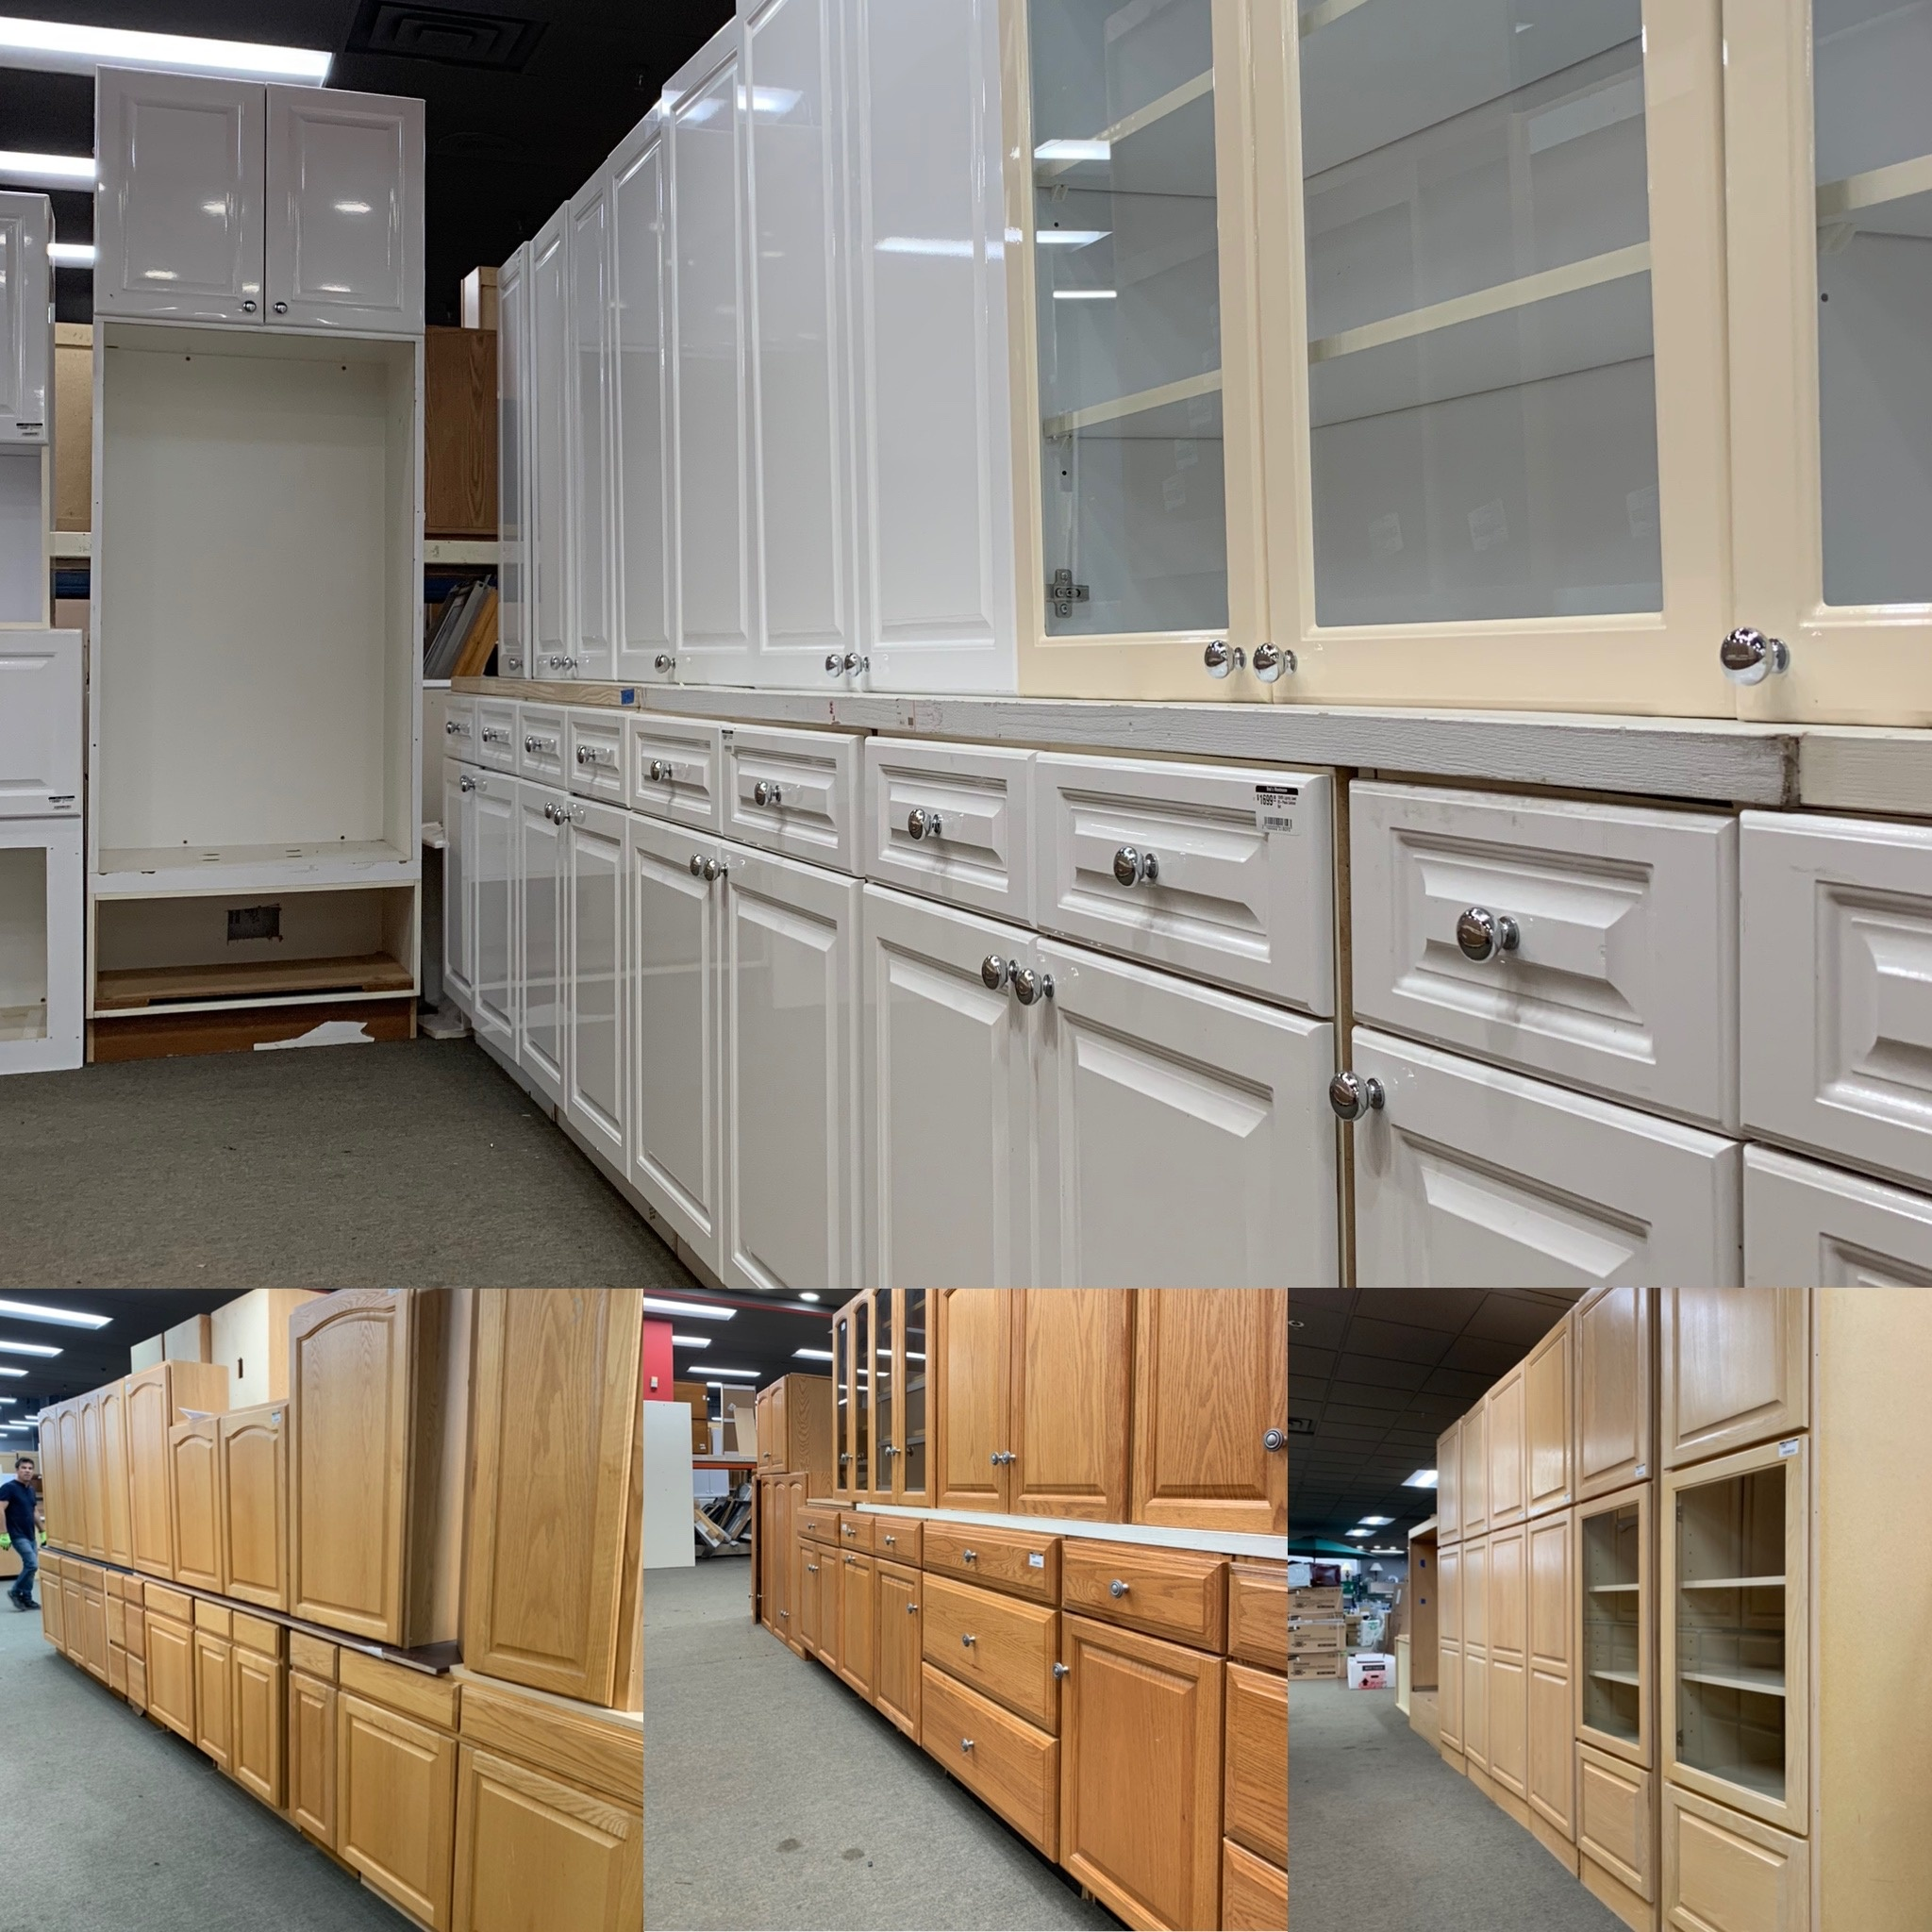 It's Raining Lightly Used Cabinet Sets at Bud's!